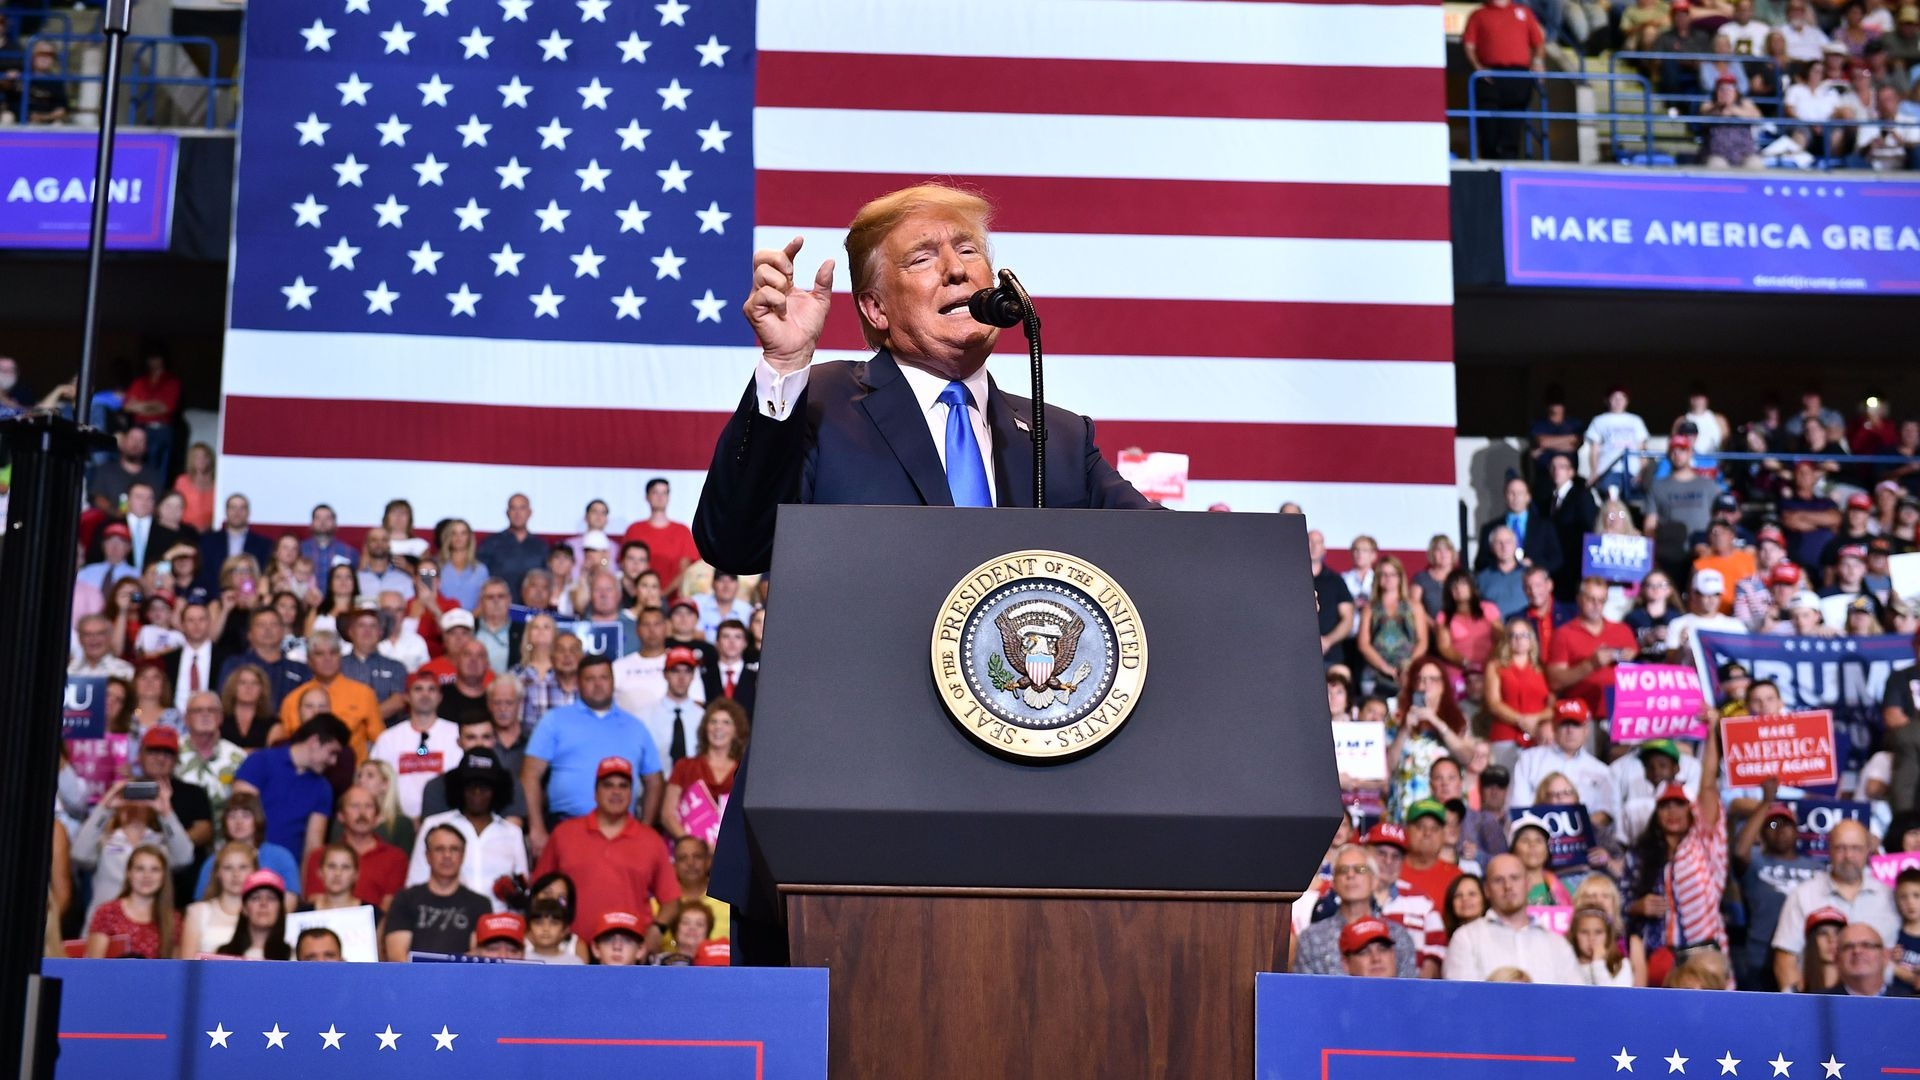 Donald Trump speaks from a podium, in front of a crowd and large American flag